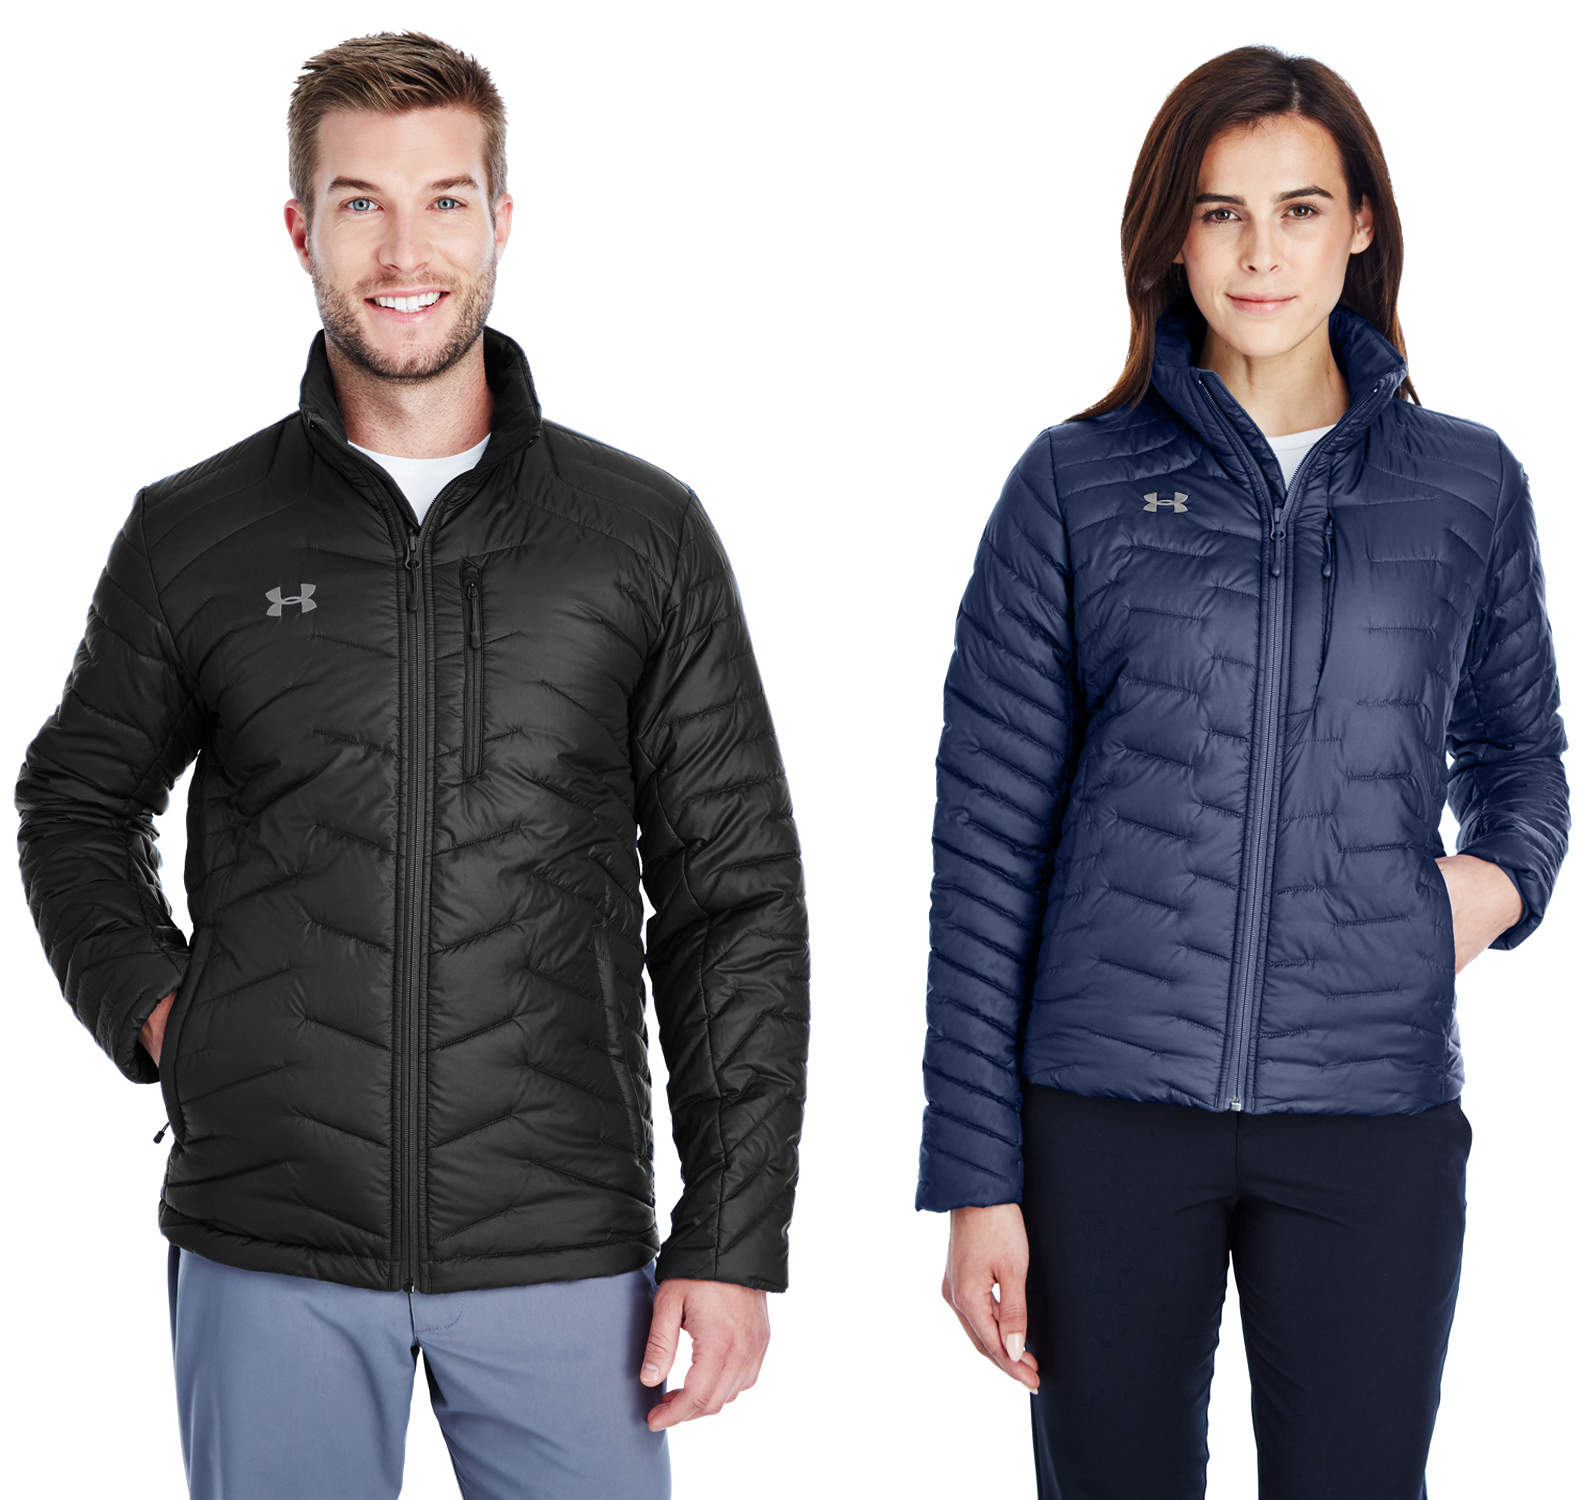 Deep Discounts on Under Armour Corporate Reactor Jackets